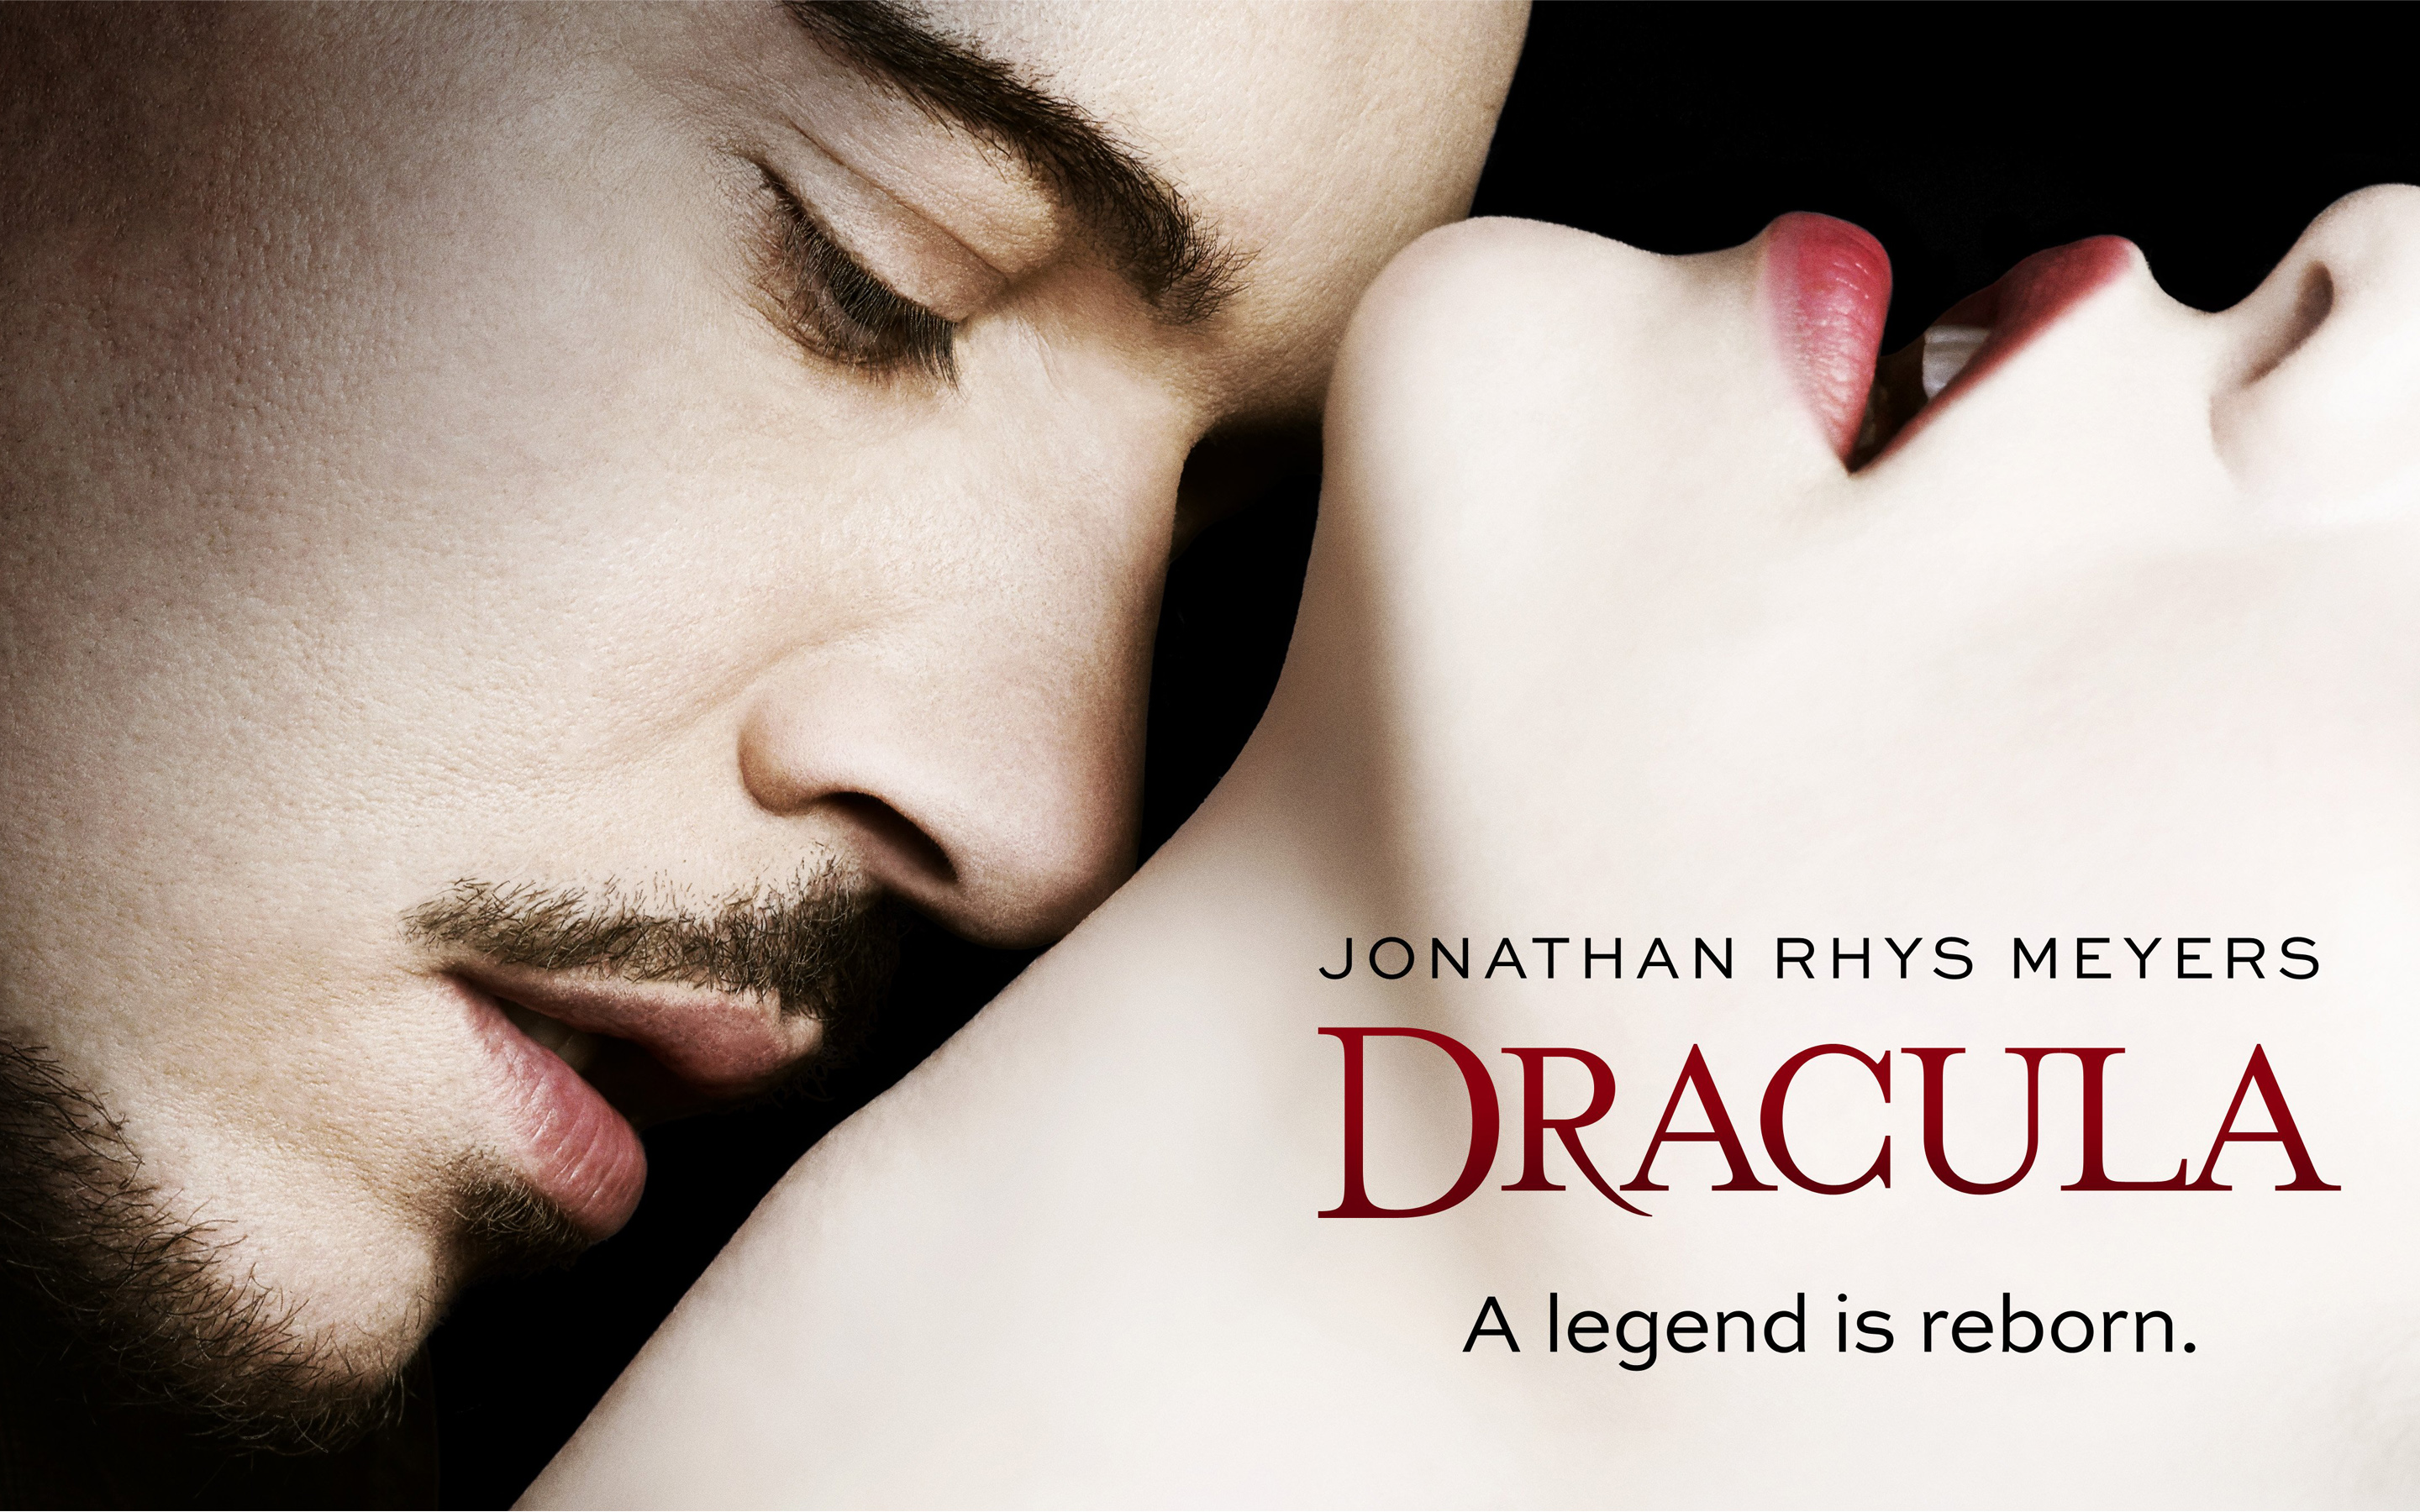 Dracula 2013 TV Series 826.32 Kb